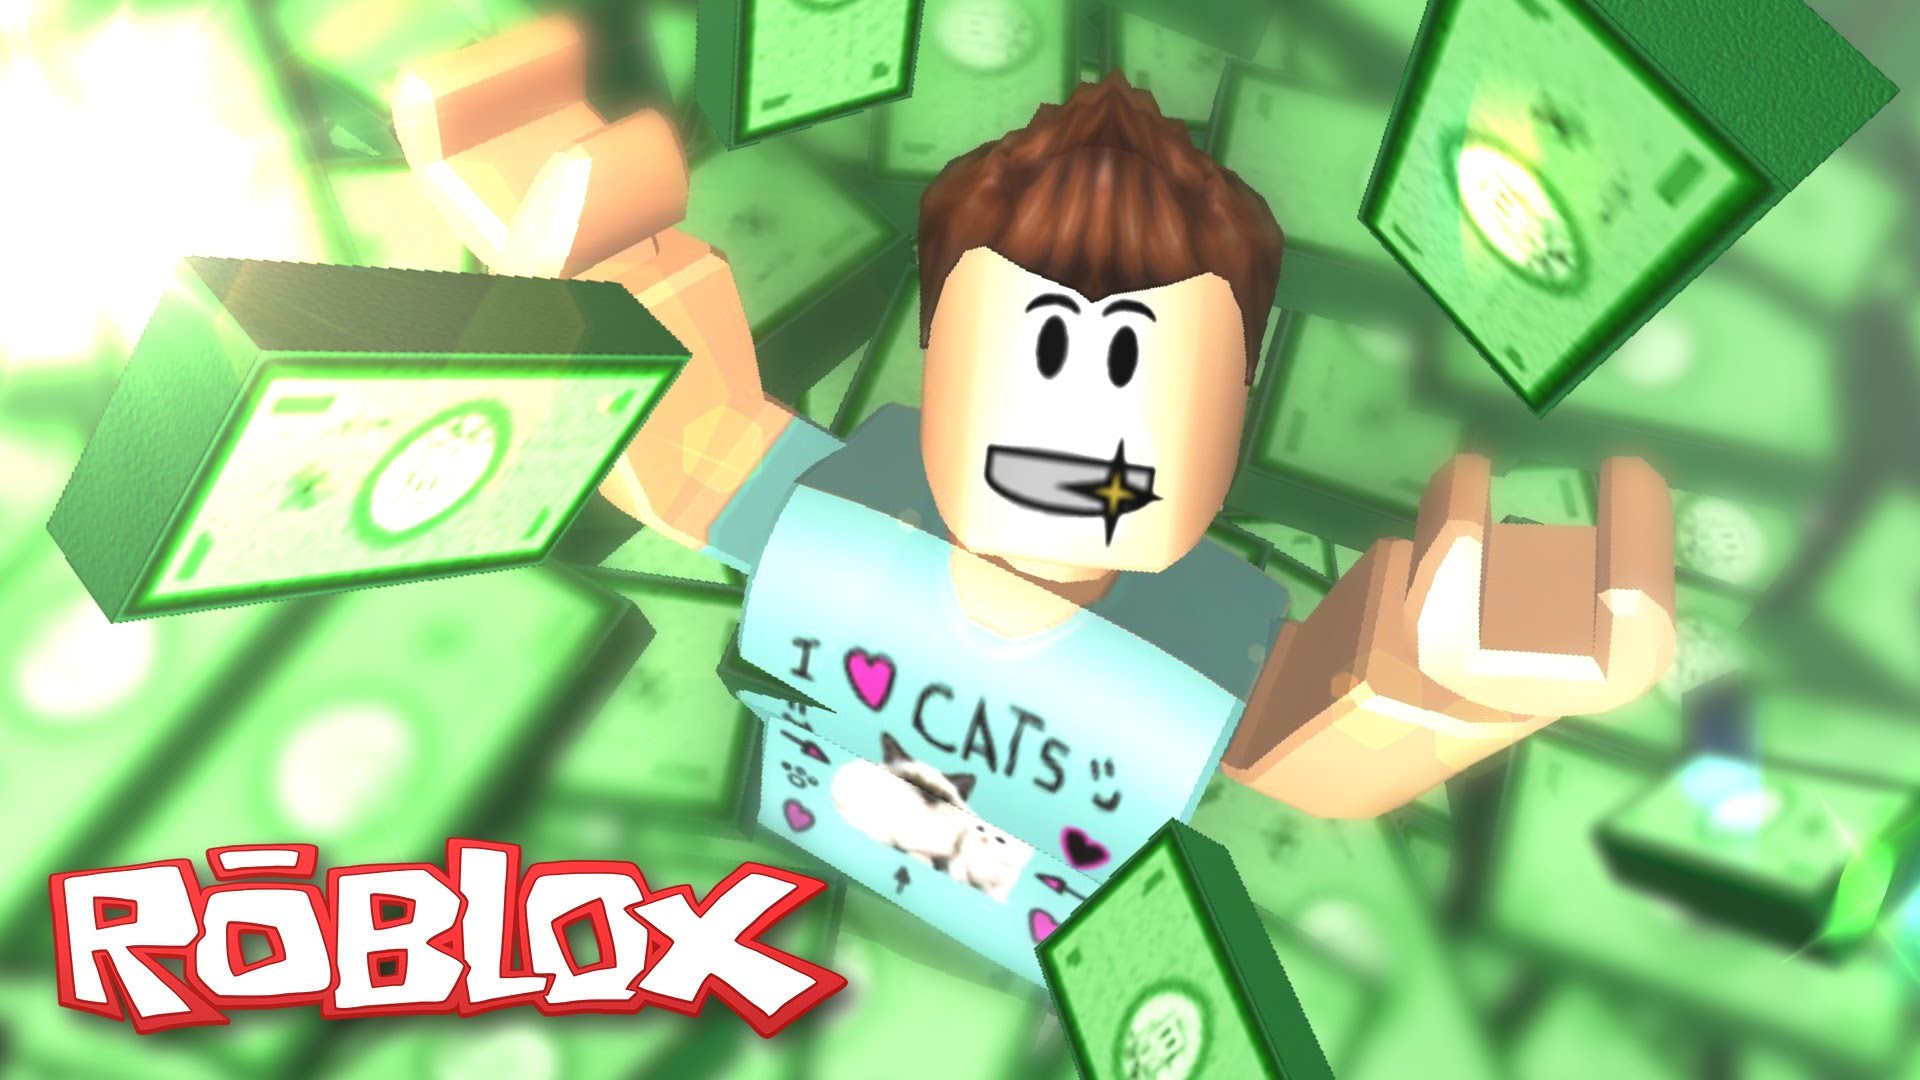 Roblox Wallpapers 84 Images - roblox everything free in catalog rbxrocks